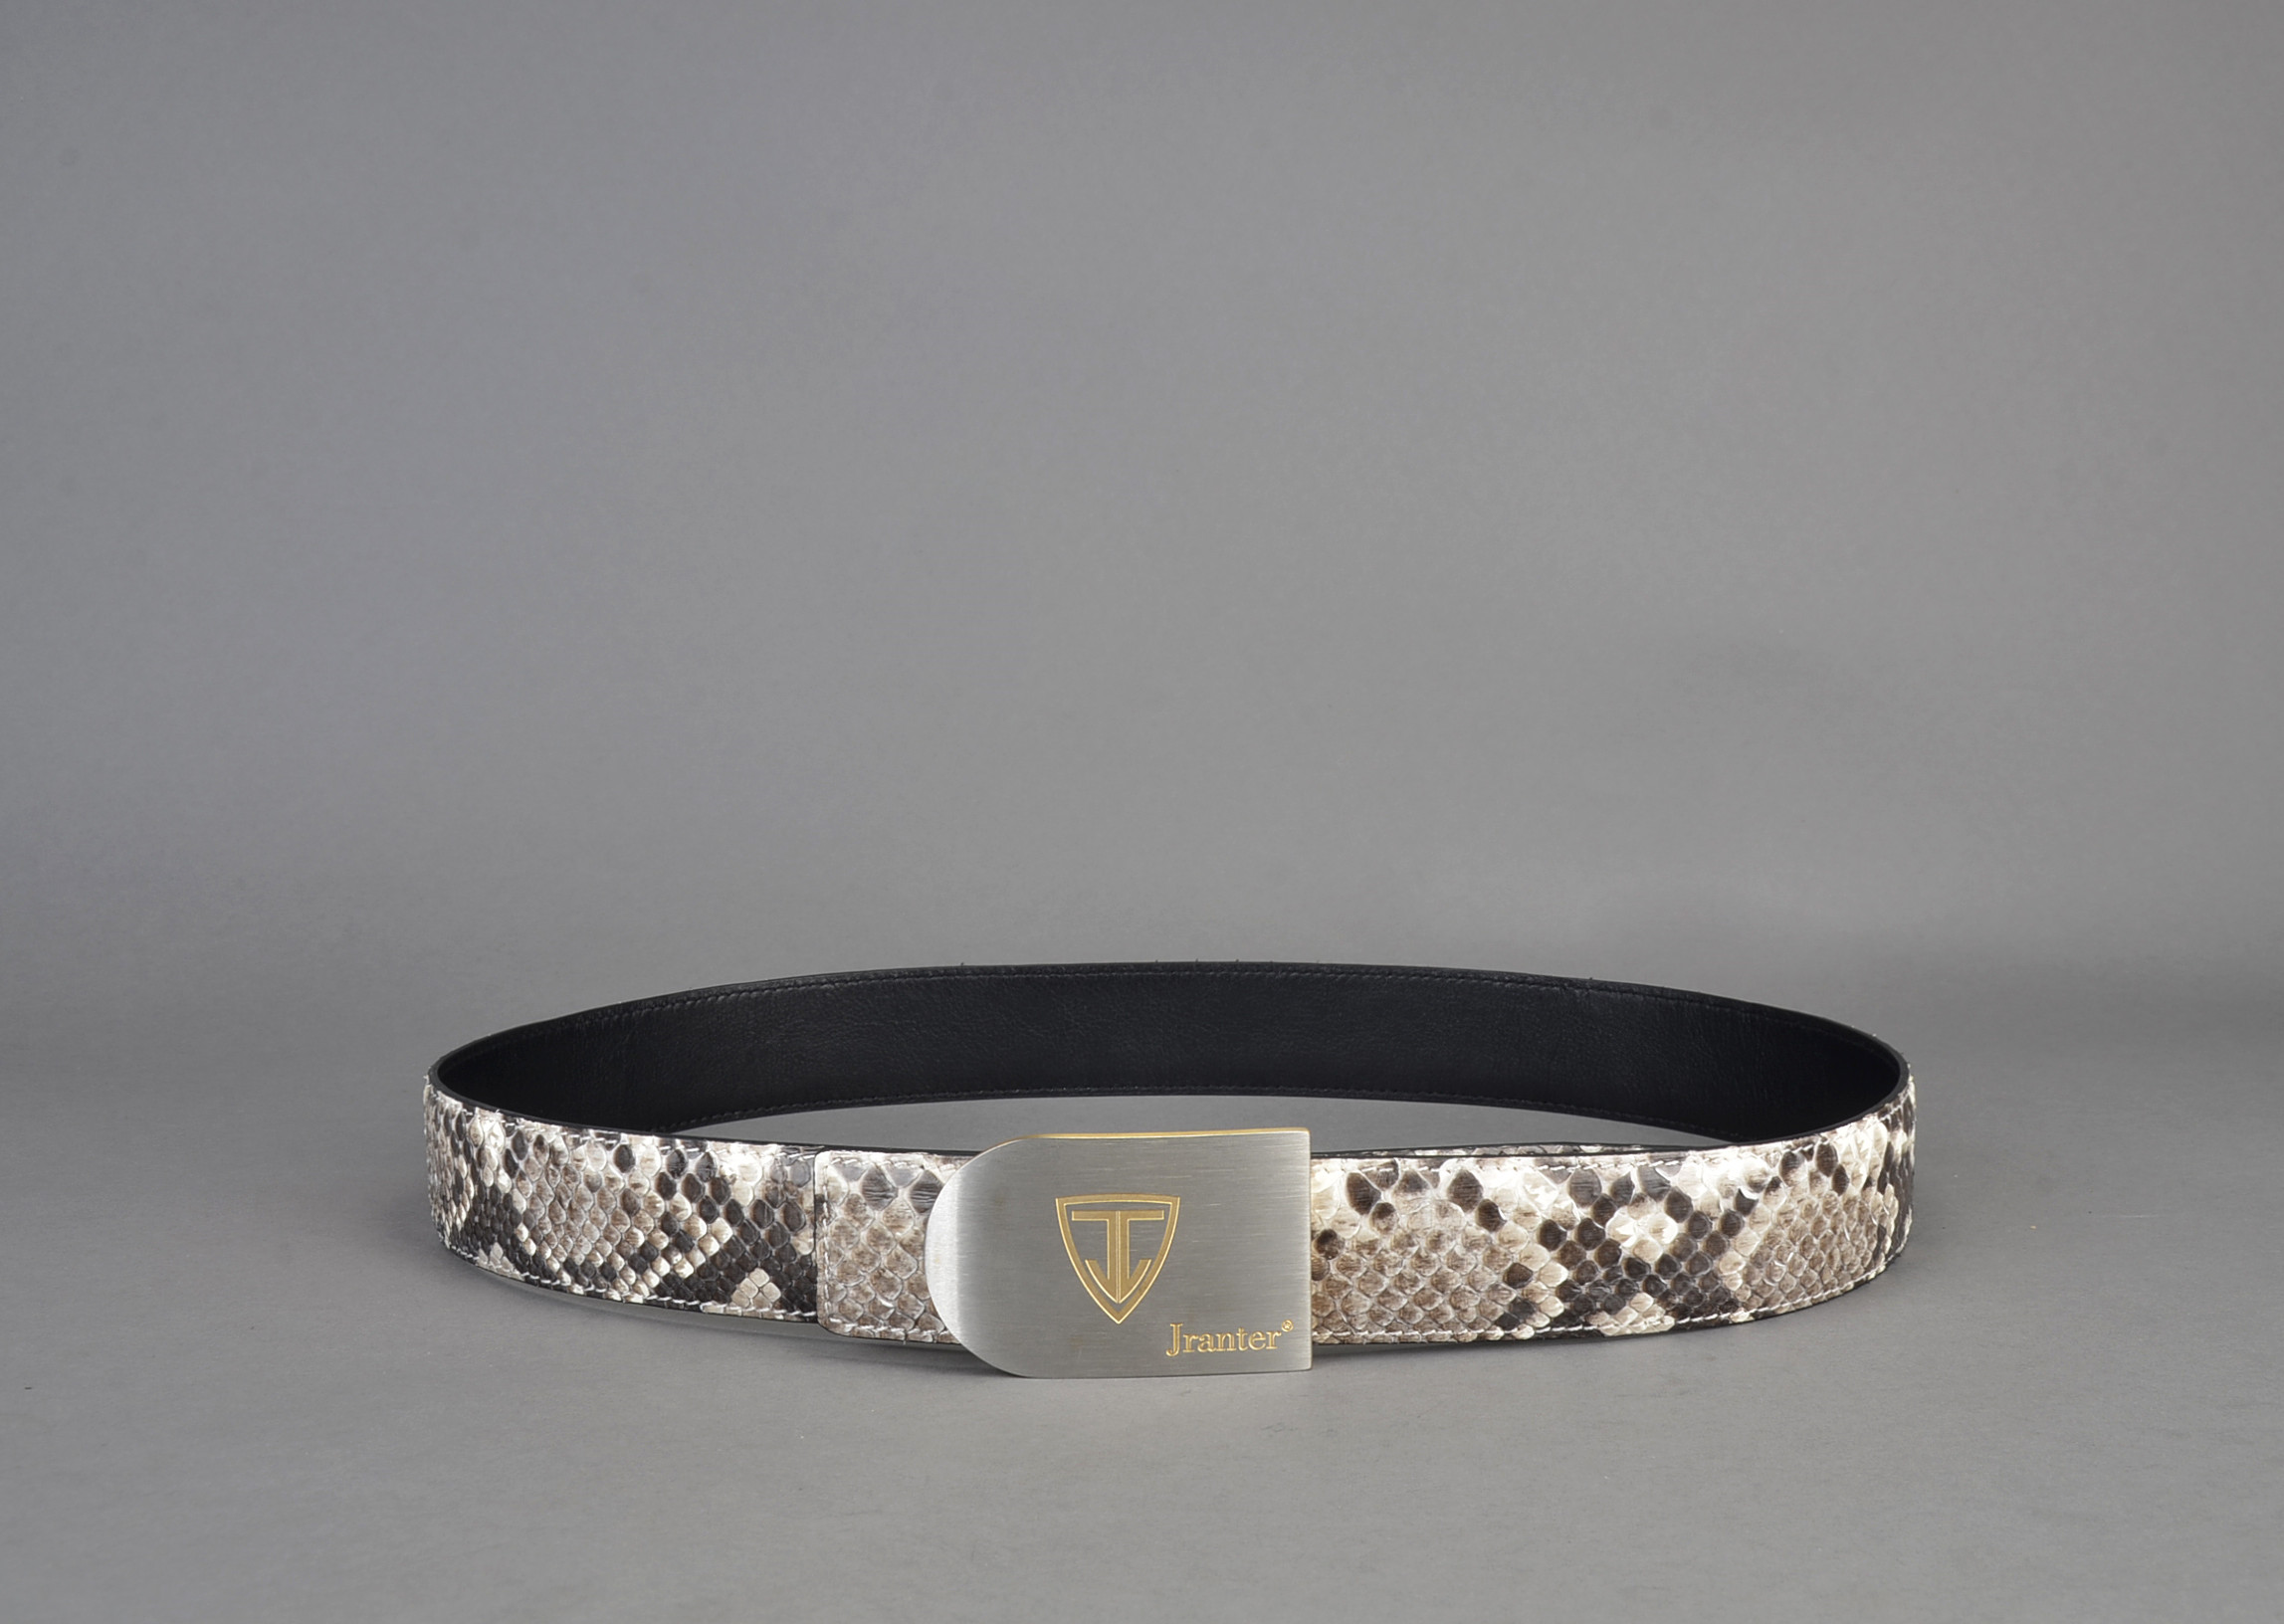 Natural Python Skin 3.8 cm Wide Men's Leather Belt With Buckle